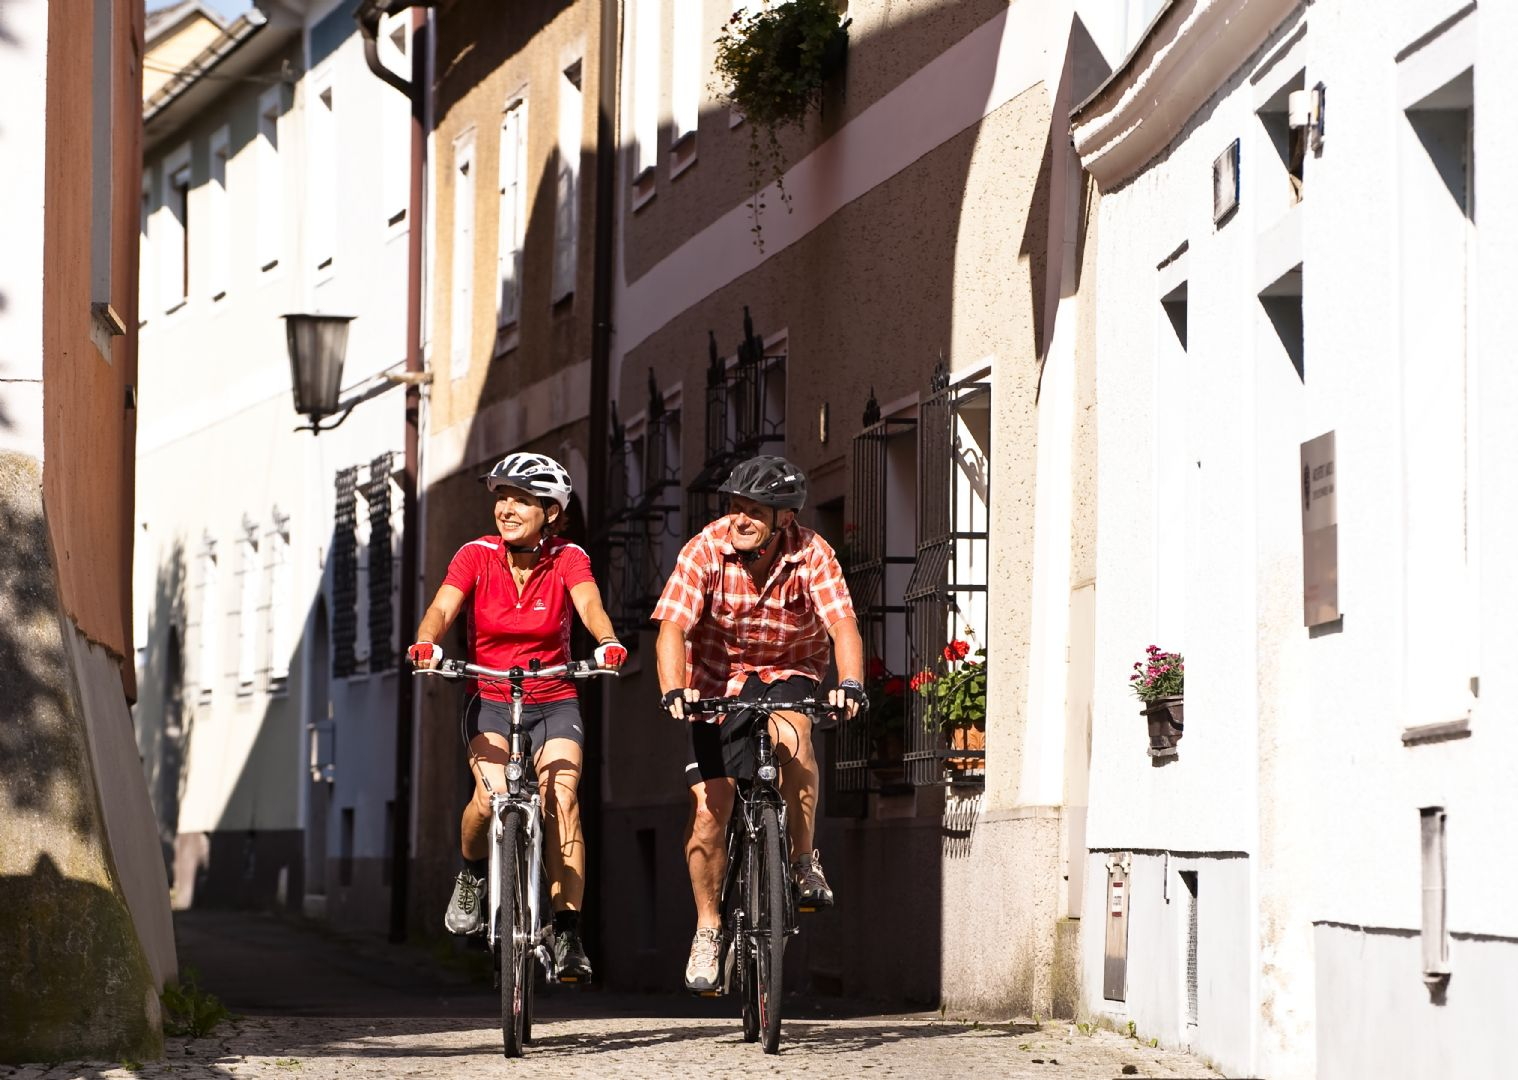 cycling-holiday-in-germany-and-austria-danube - Germany and Austria - Danube 8 Days - Self-Guided Leisure Cycling Holiday - Leisure Cycling